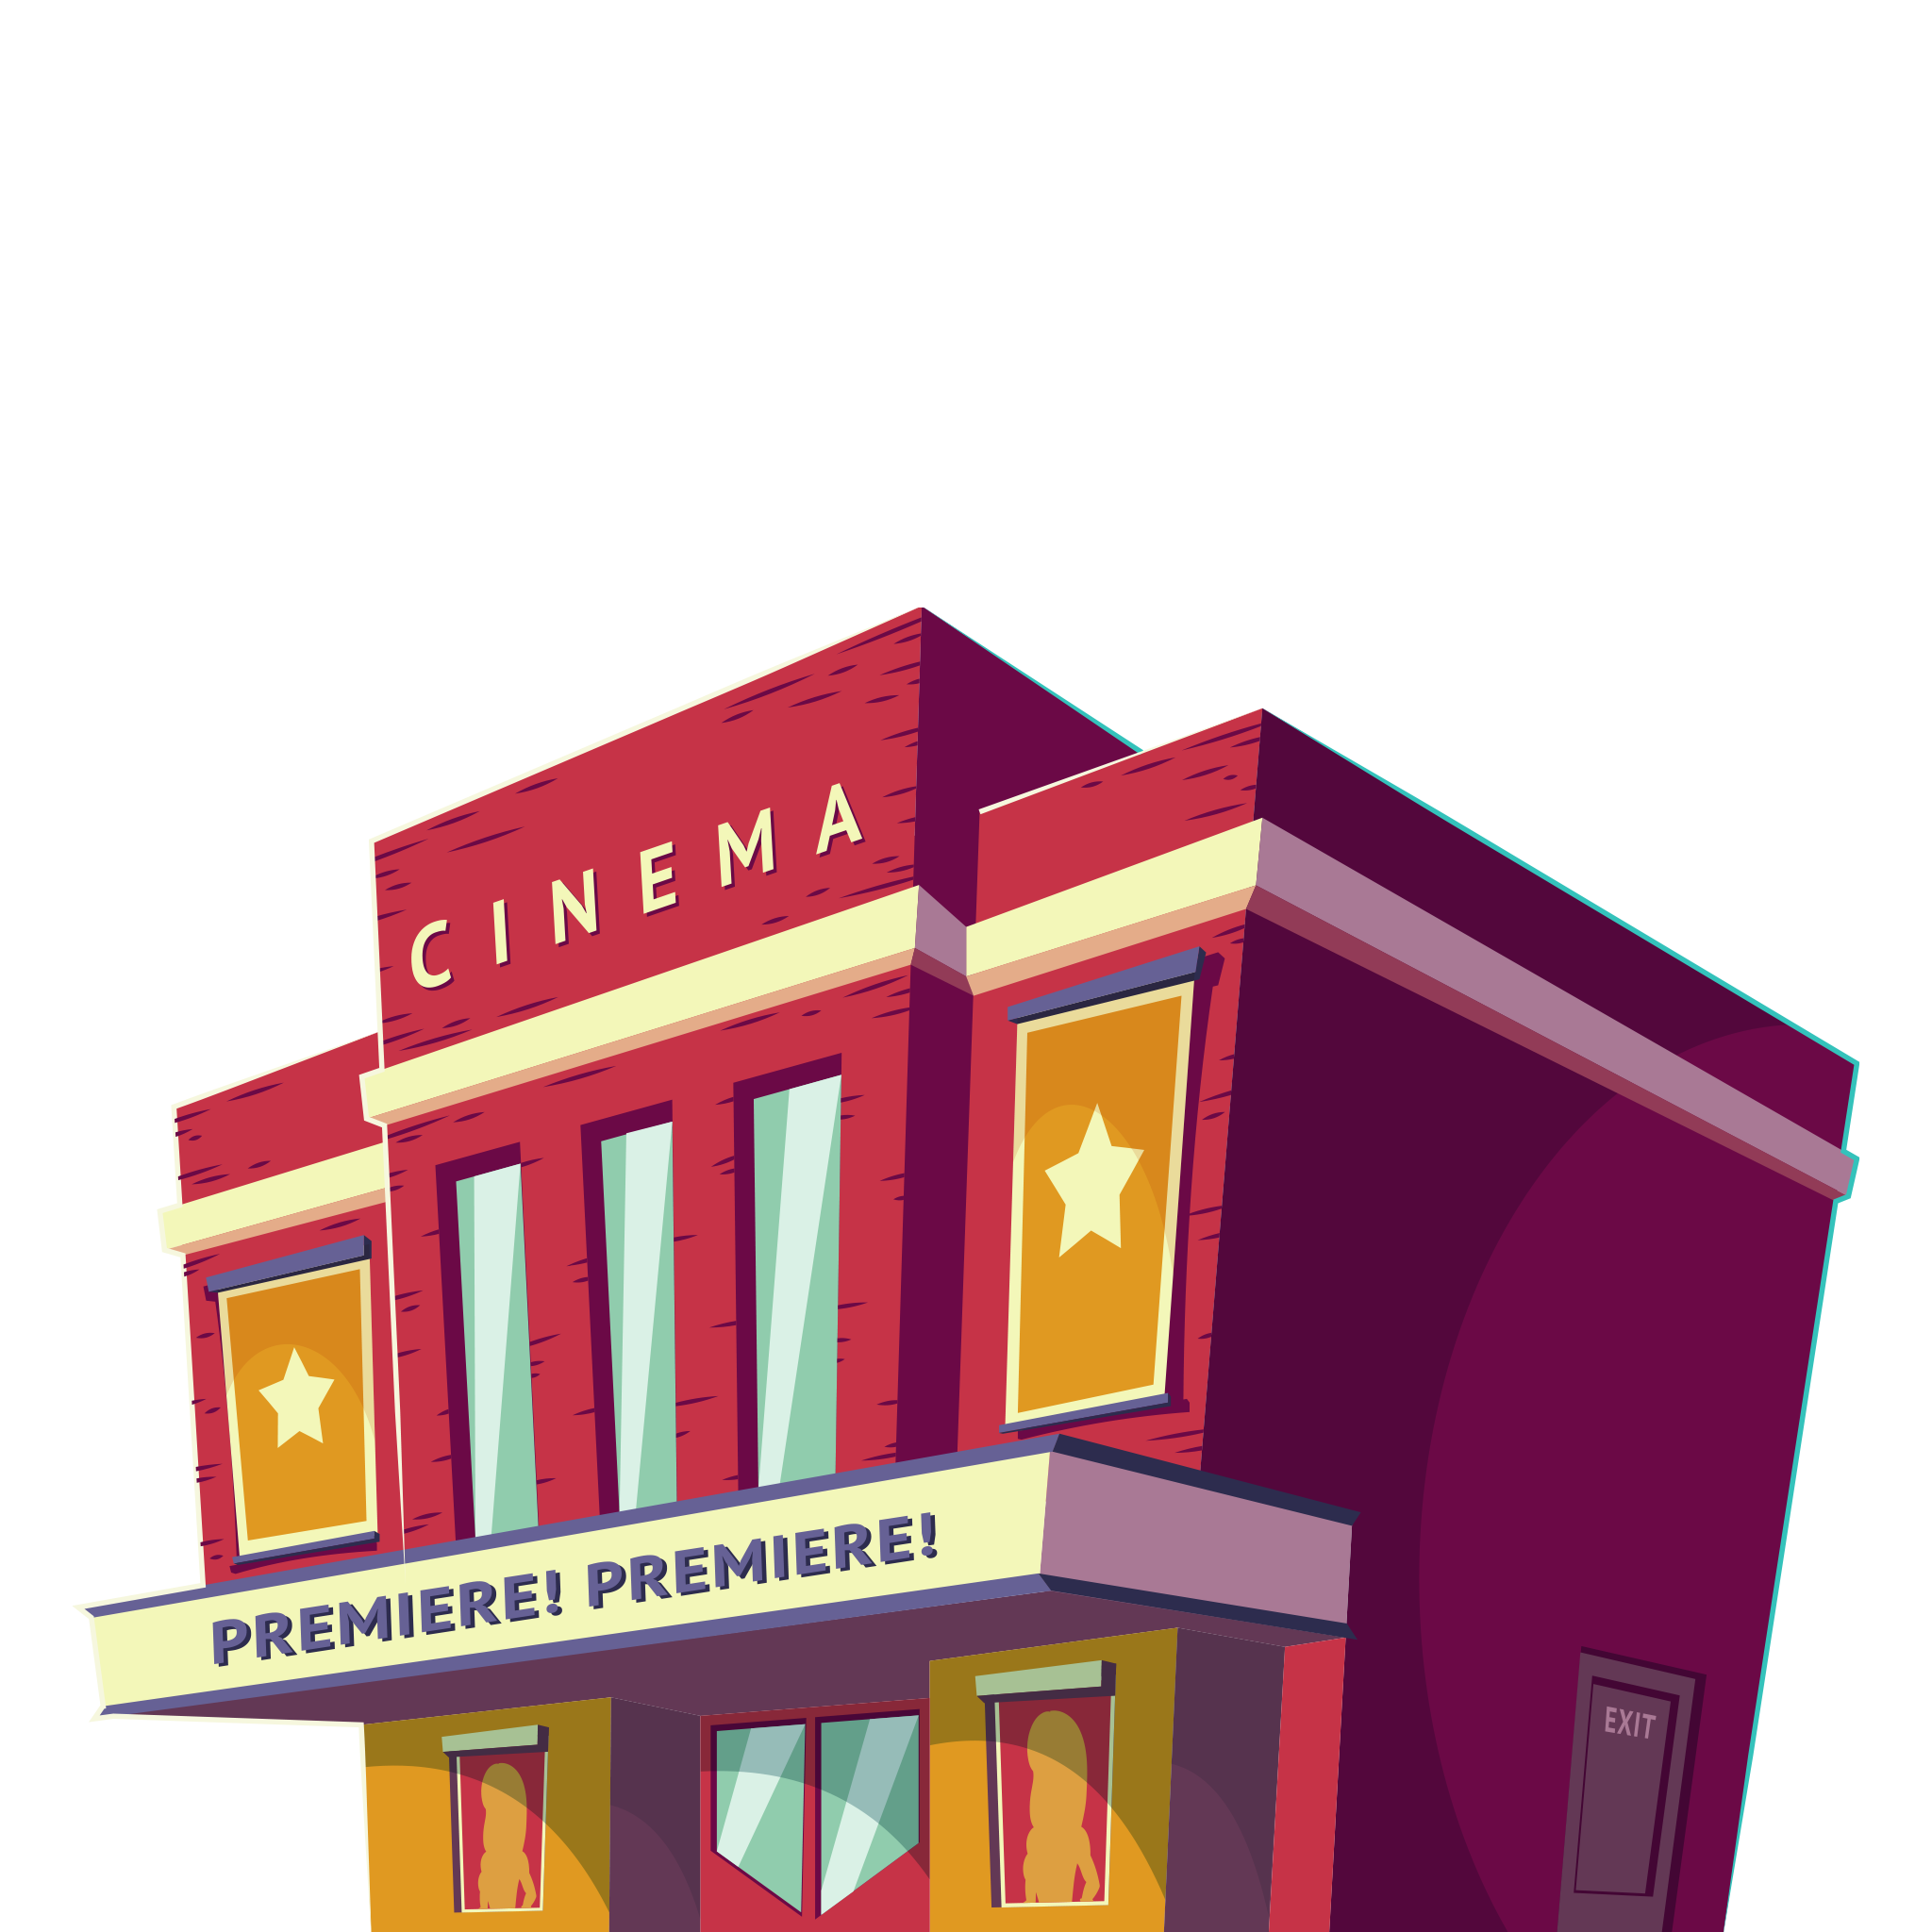 Buildings clipart cinema. Hall image png free